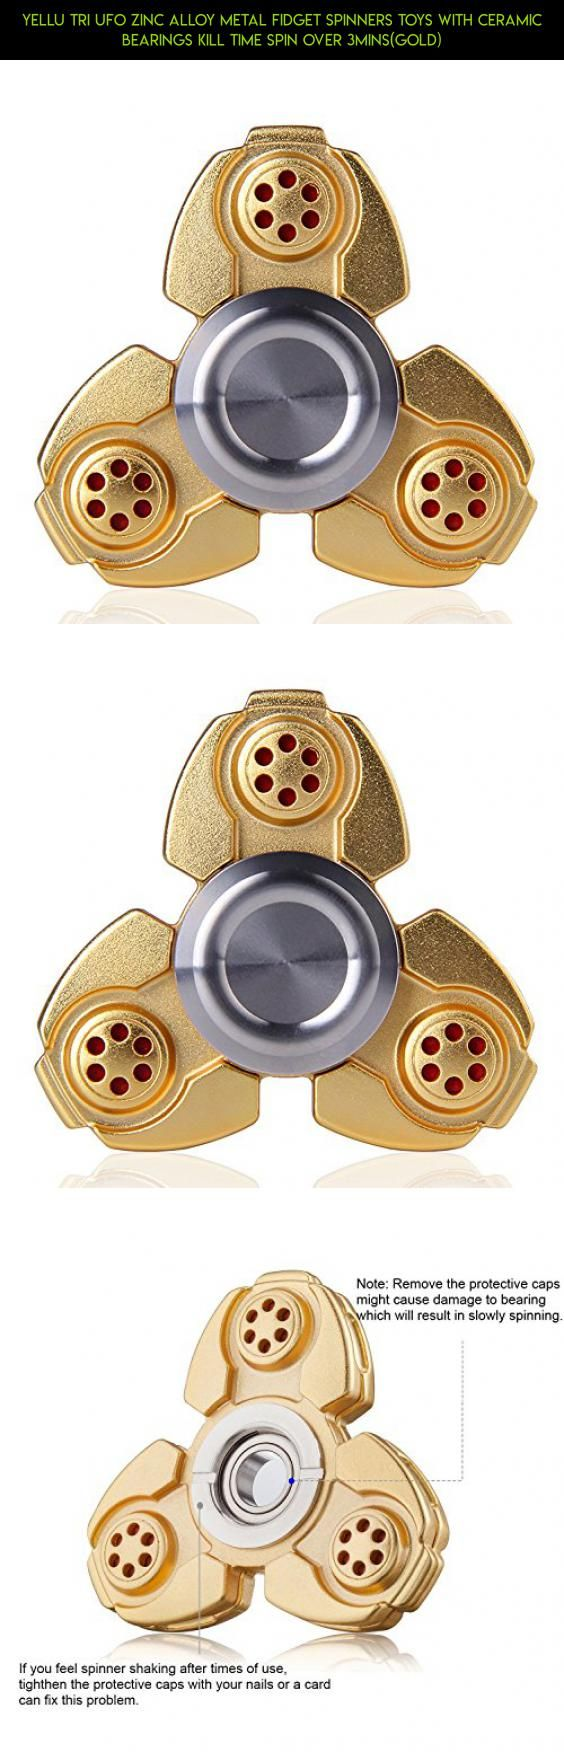 YELLU Tri UFO Zinc Alloy Metal Fidget Spinners Toys With Ceramic Bearings Kill Time Spin Over 3Mins(Gold) #drone #technology #fpv #parts #plans #gadgets #kit #shopping #tech #racing #products #metal #ufo #spinner #camera